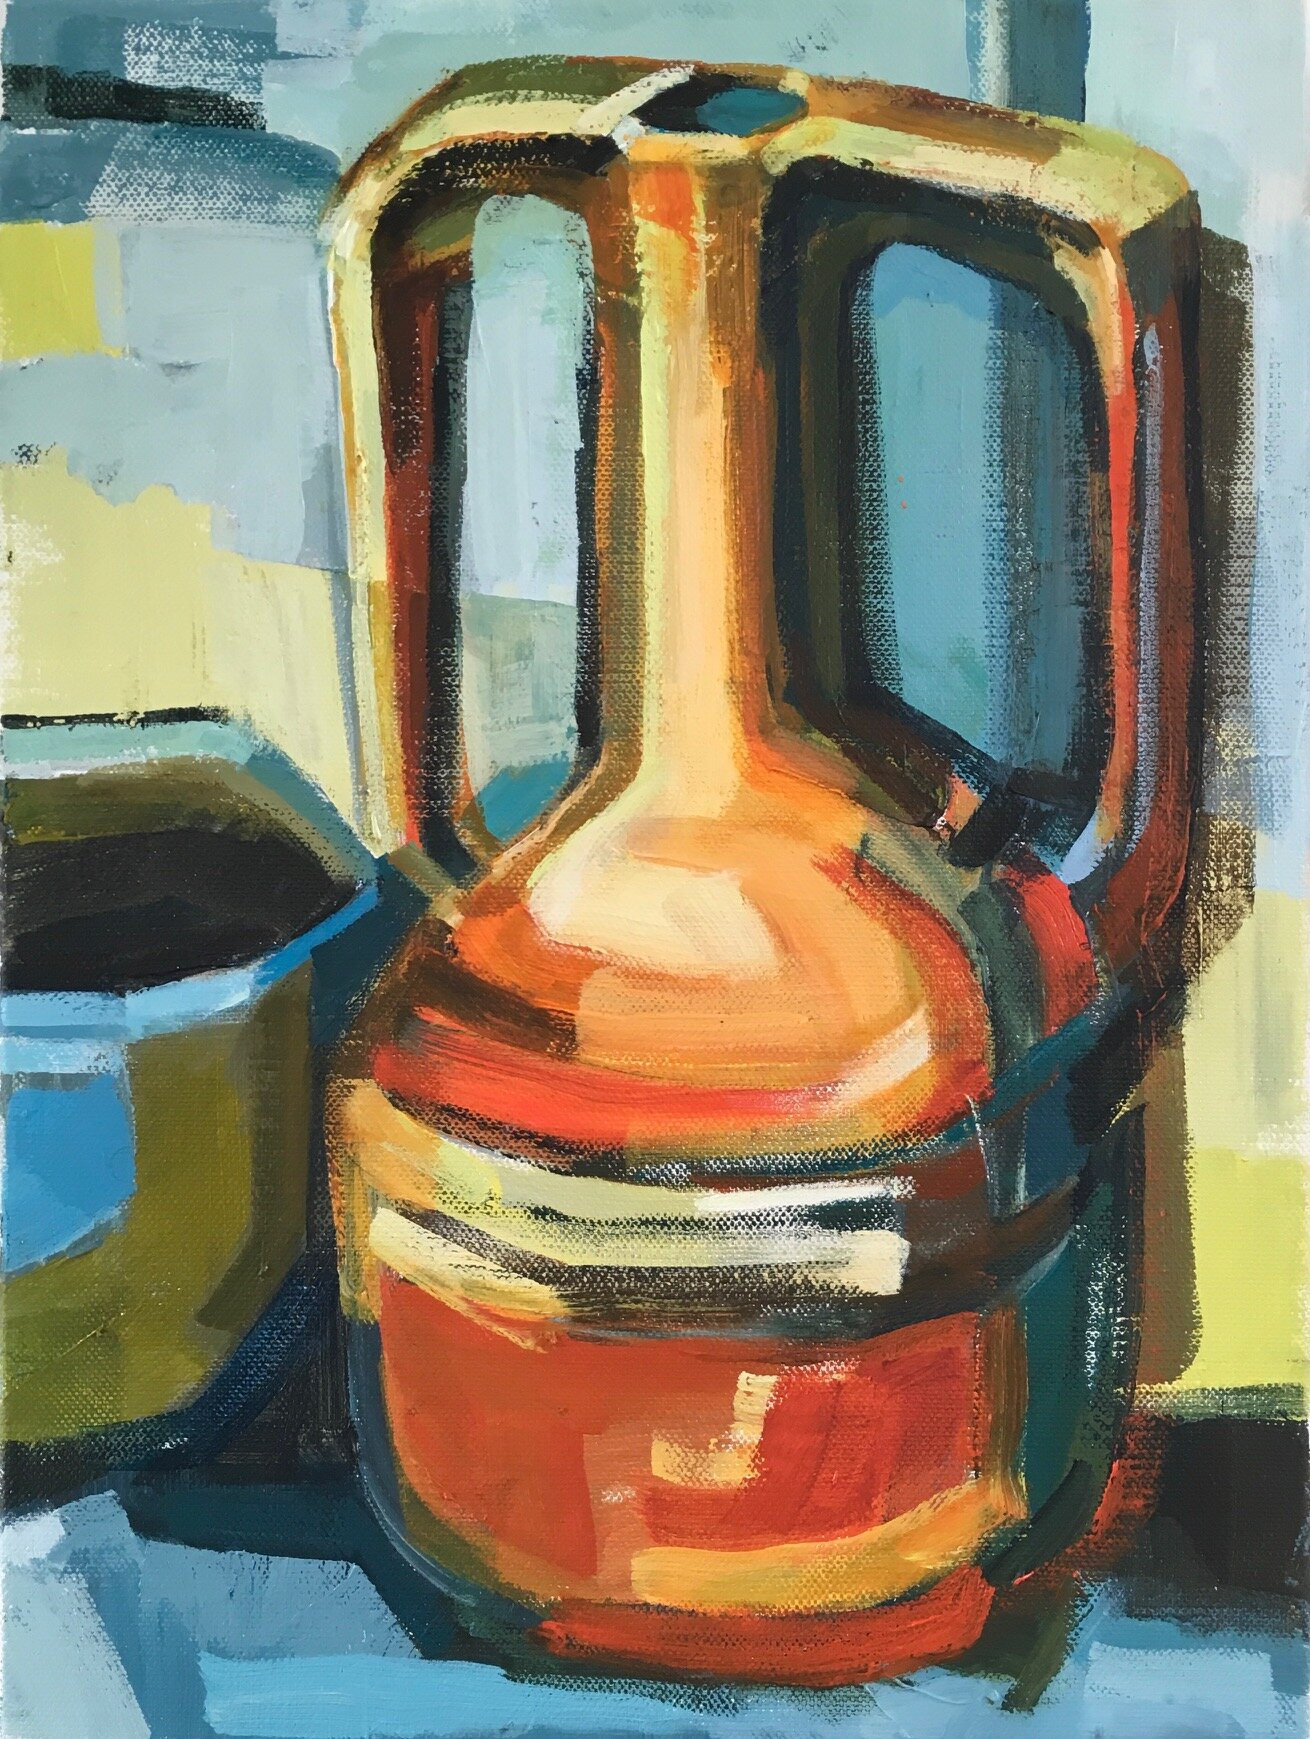 Artist: Kate Strachan  Title: Orange Vase with Olive and Blue Bowl  Size: 45 x 35 cm  Medium: Acrylic on canvas  Price: £600